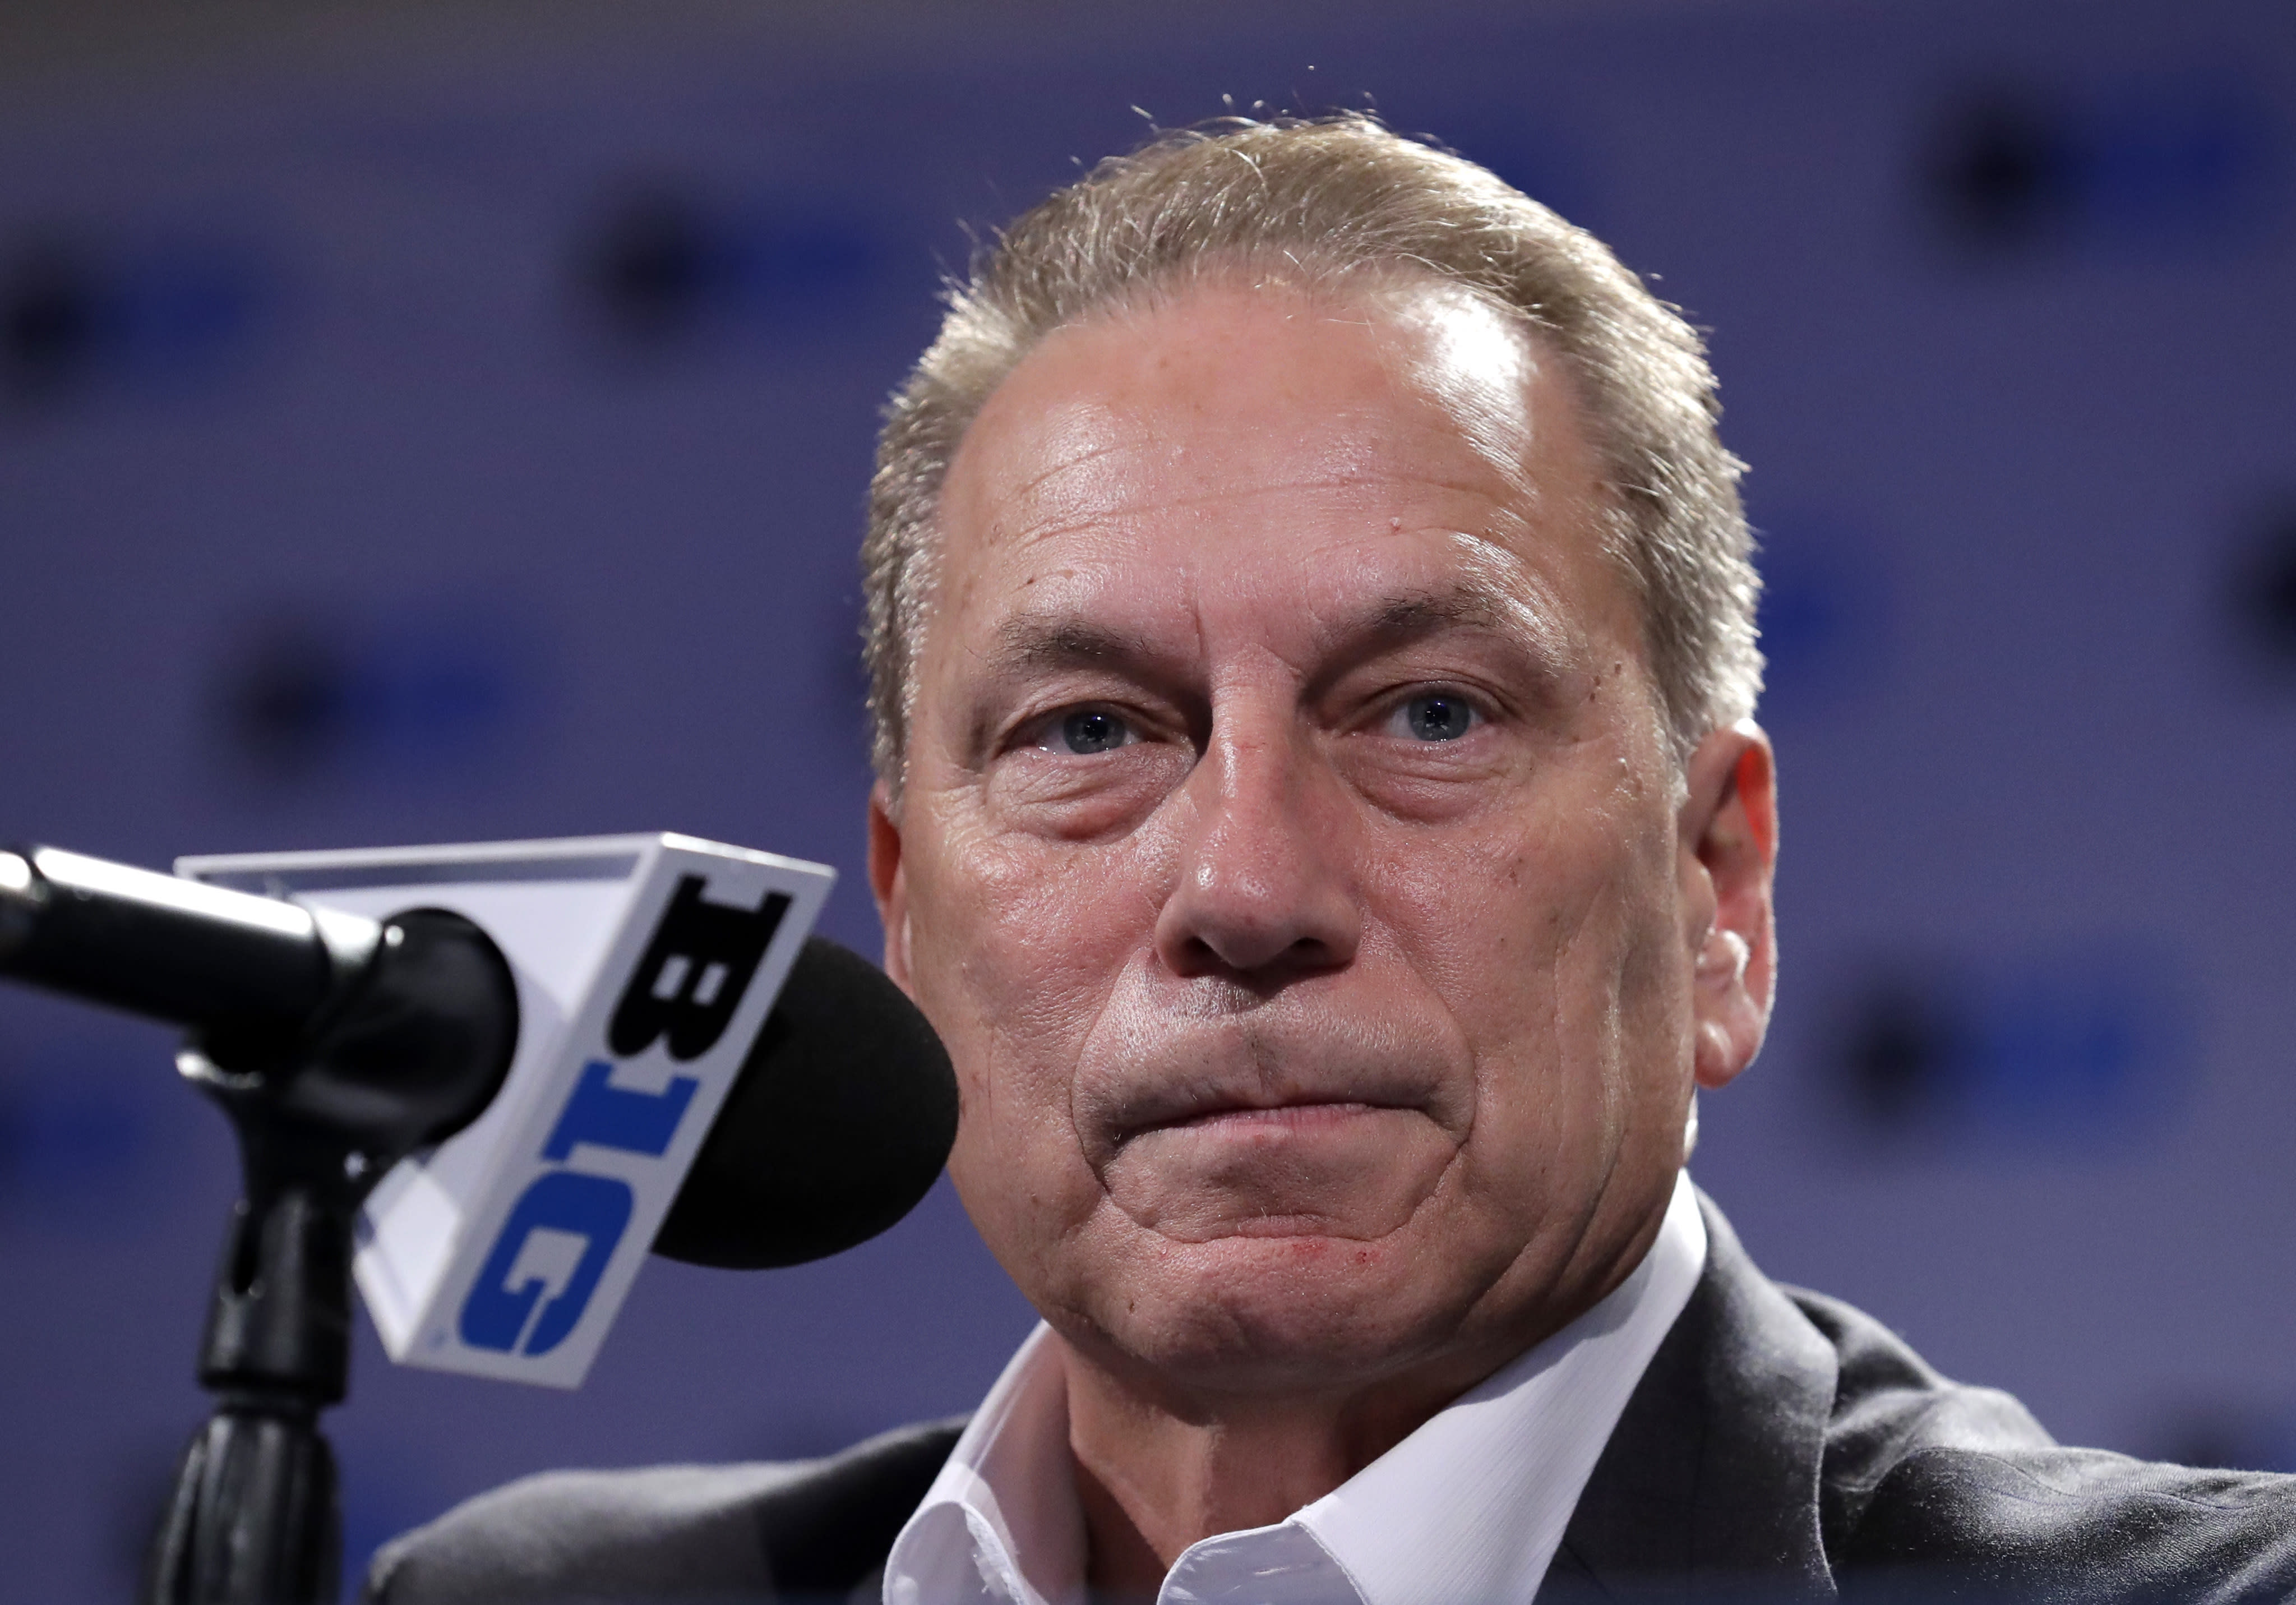 East Lansing Tom Izzo glanced up to the rafters for just a second on Thursday evening just after Michigan State had been through one of its toughest